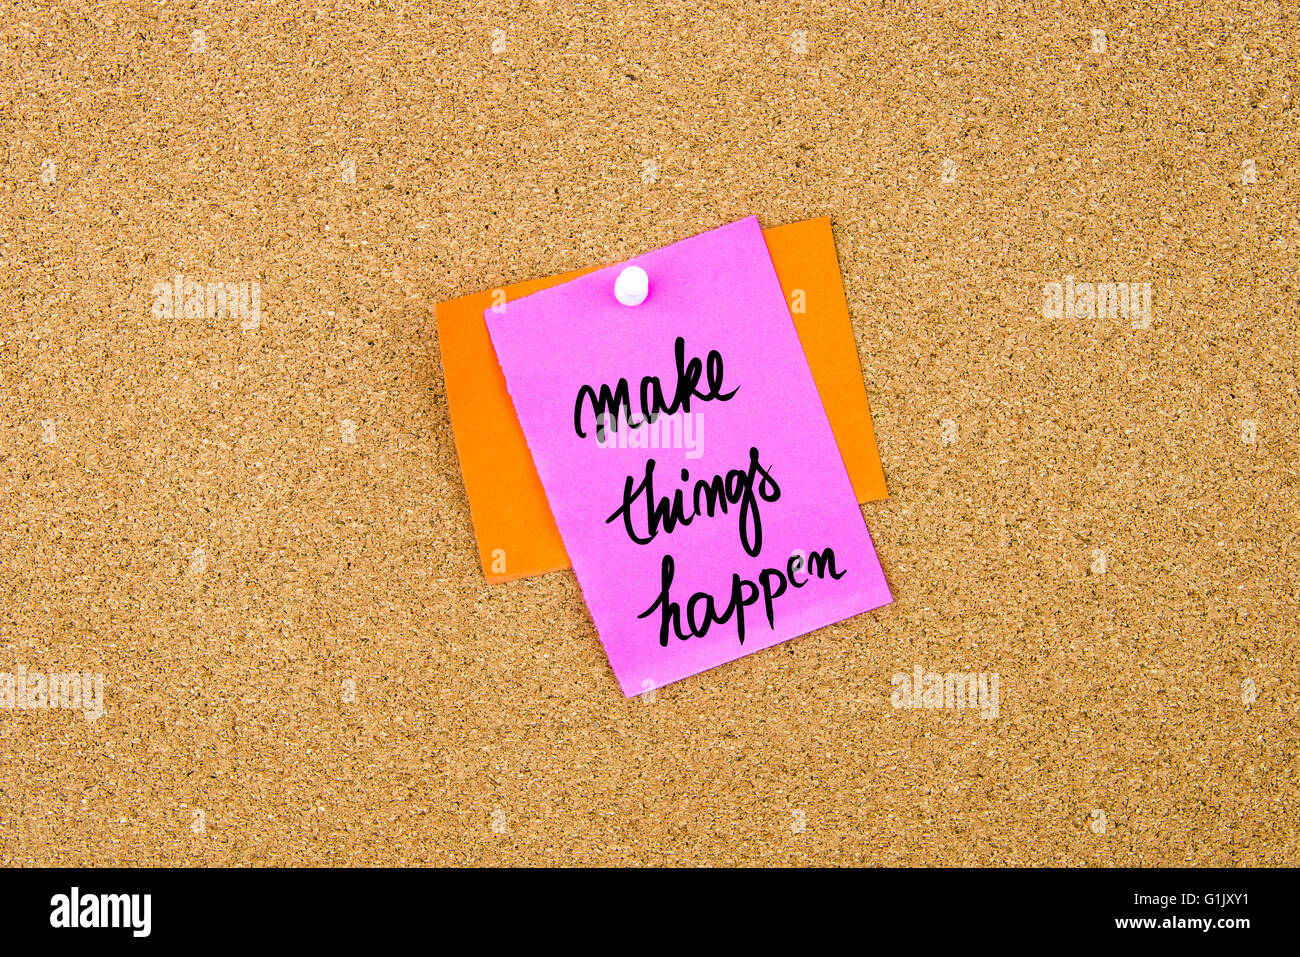 Make Things Happen written on paper note pinned on cork board with white thumbtack, copy space available Stock Photo